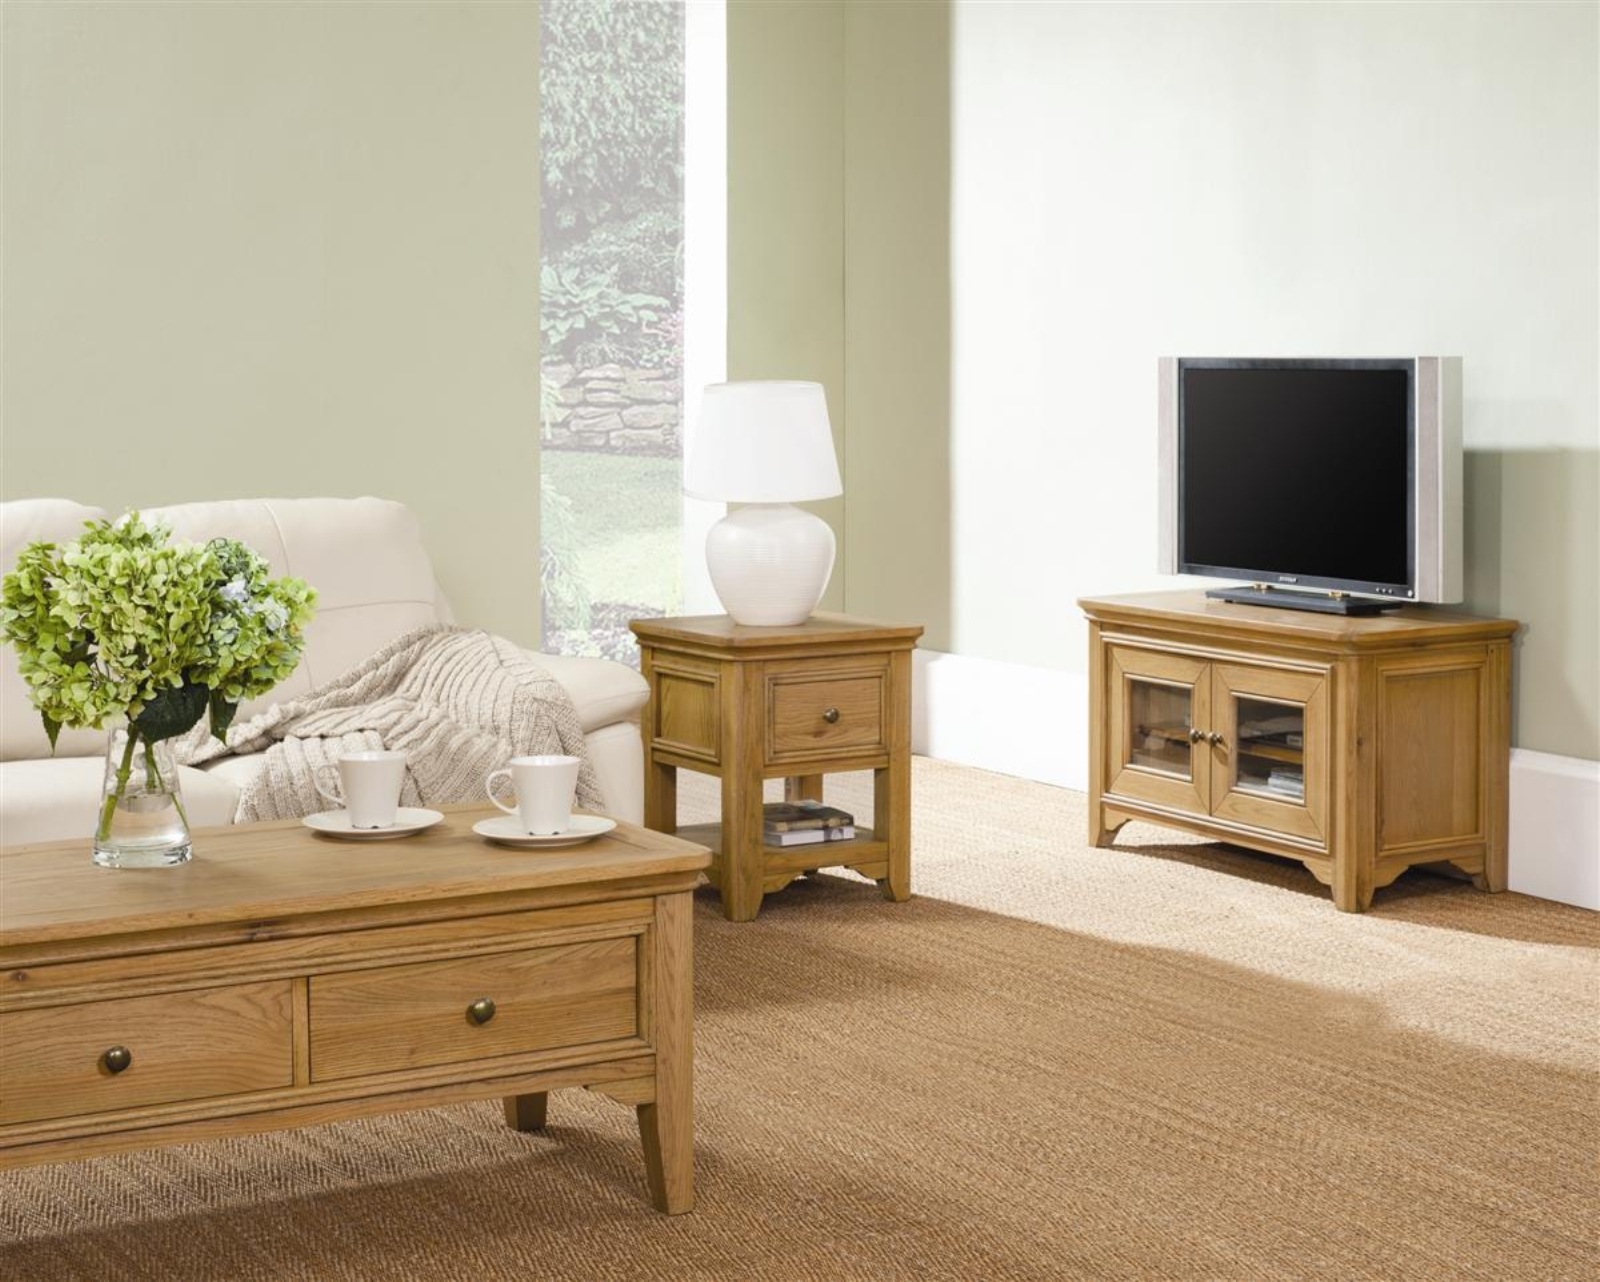 http://classicfurn.co.uk/media/download/frco_living%20%20setting.jpg